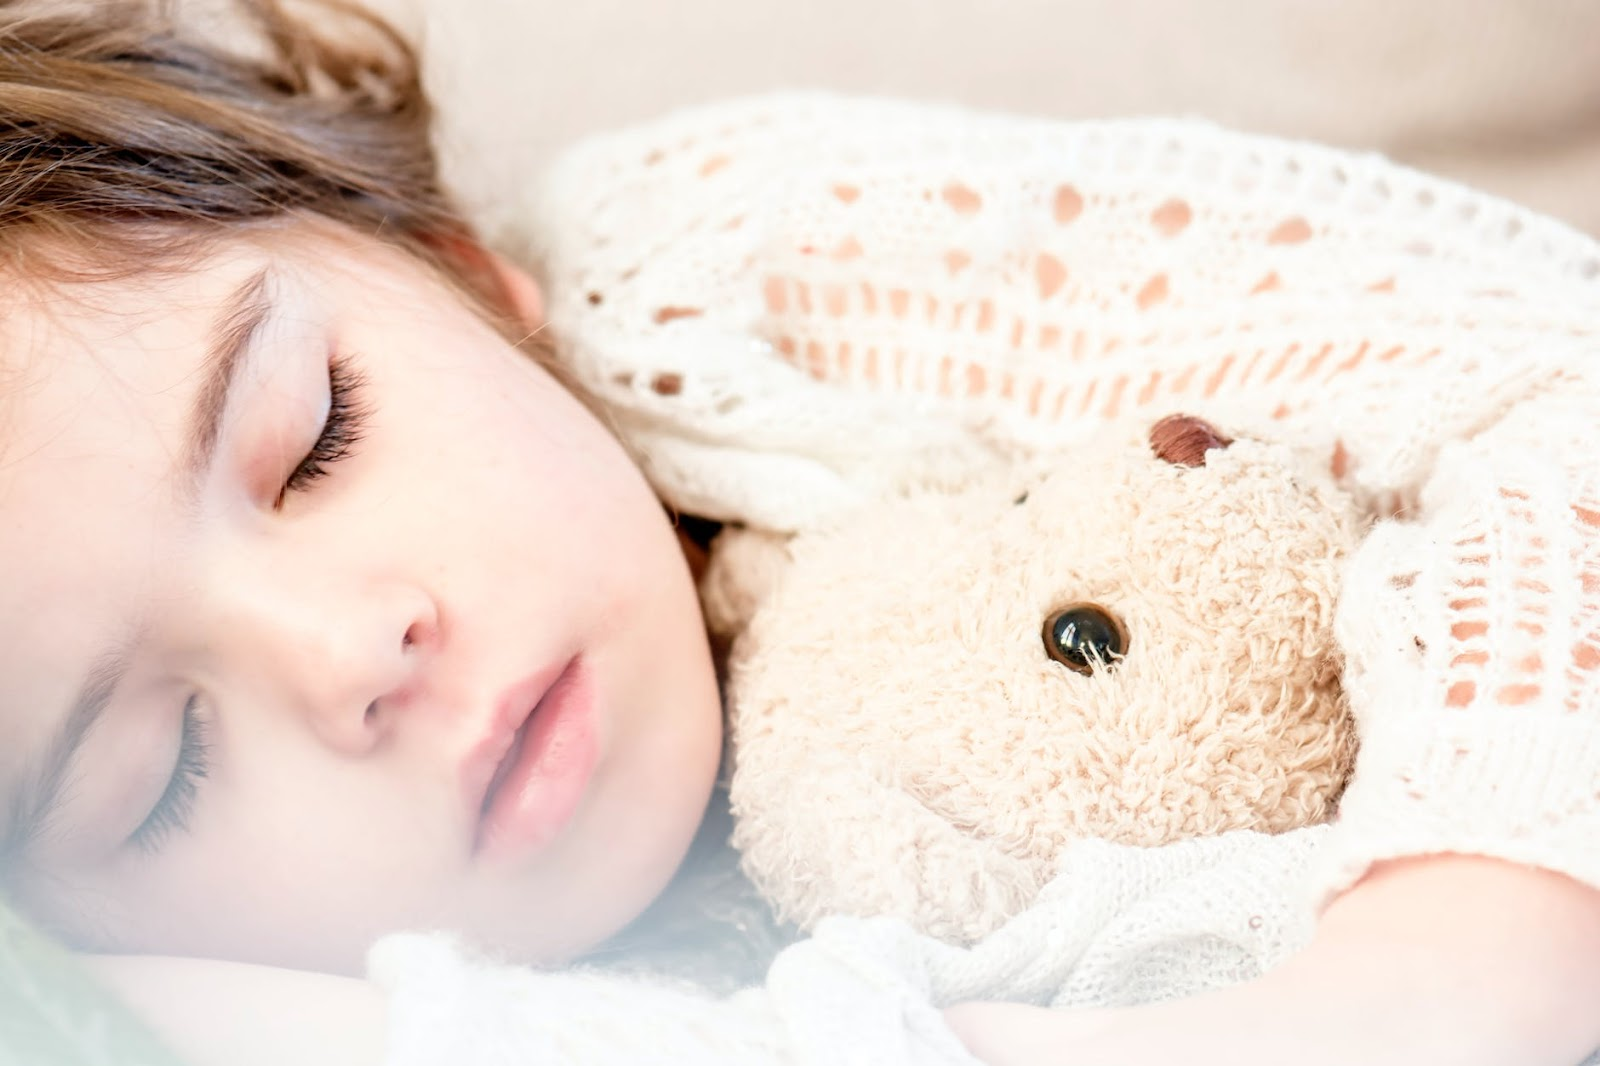 A good solid routine and sleep will help a child's mental health.